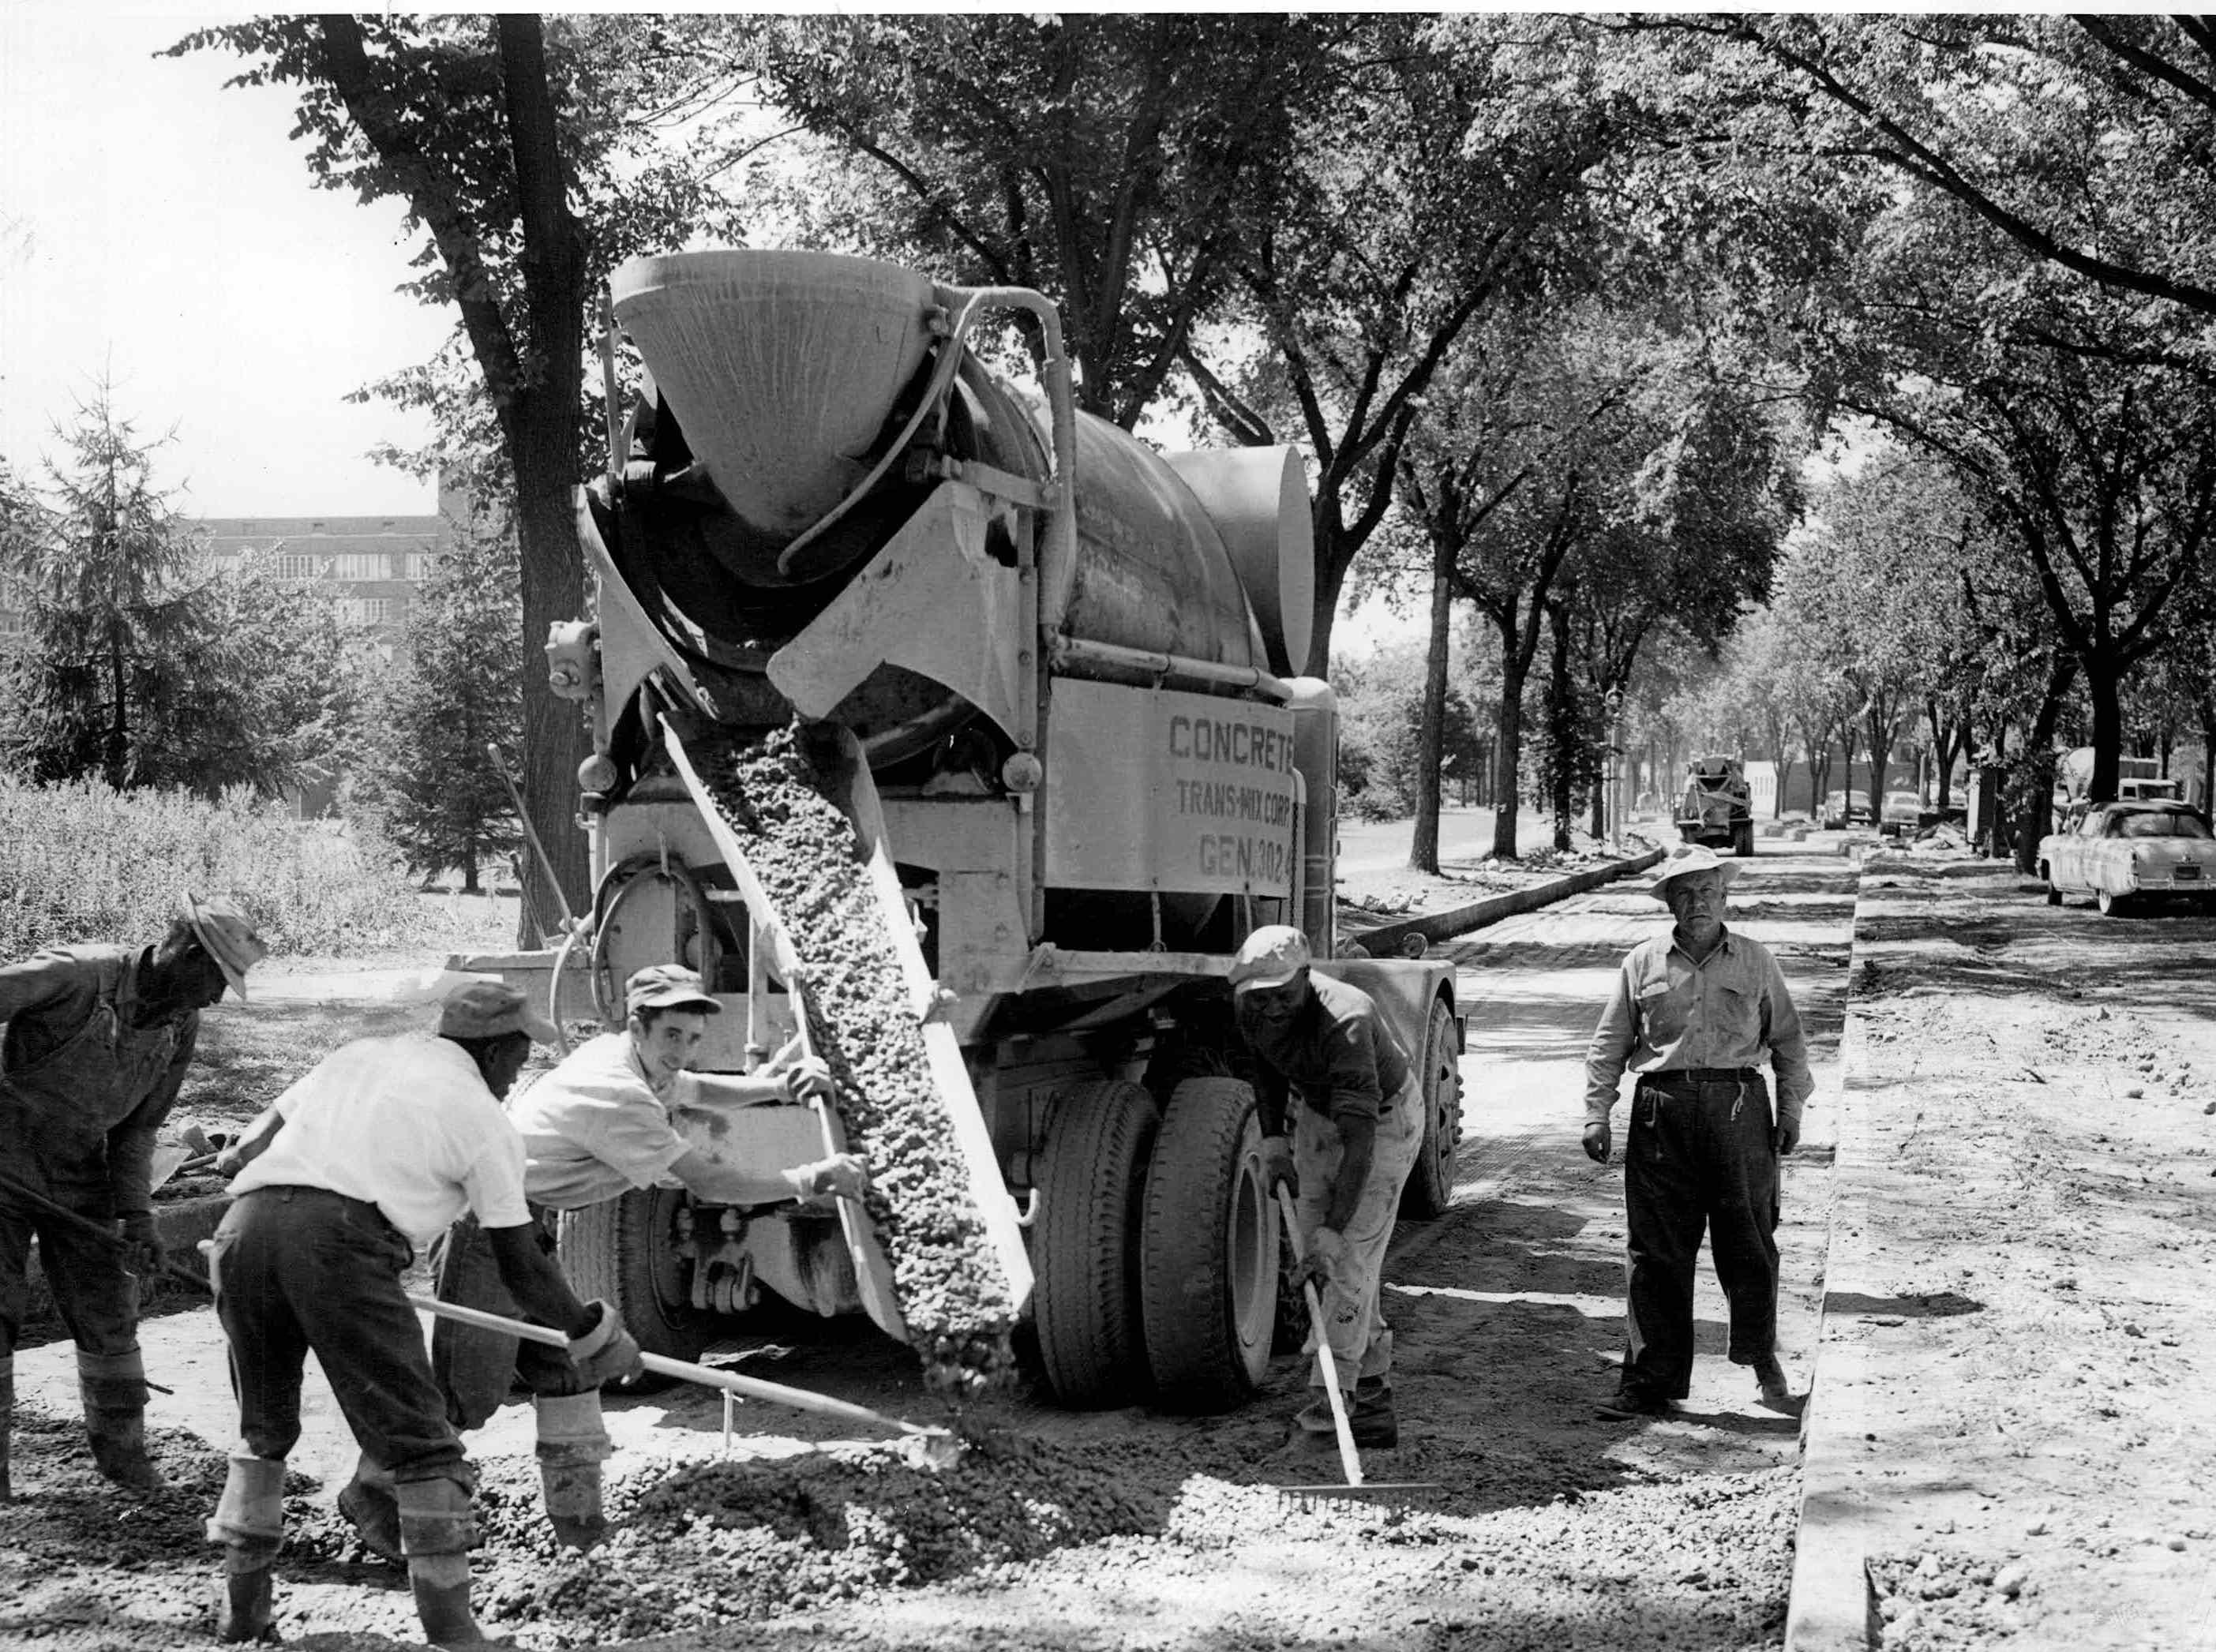 Workmen pour concrete in the south lane of Elmwood Avenue between Mt. Hope Avenue and Lattimore Road in this photo from 1954.